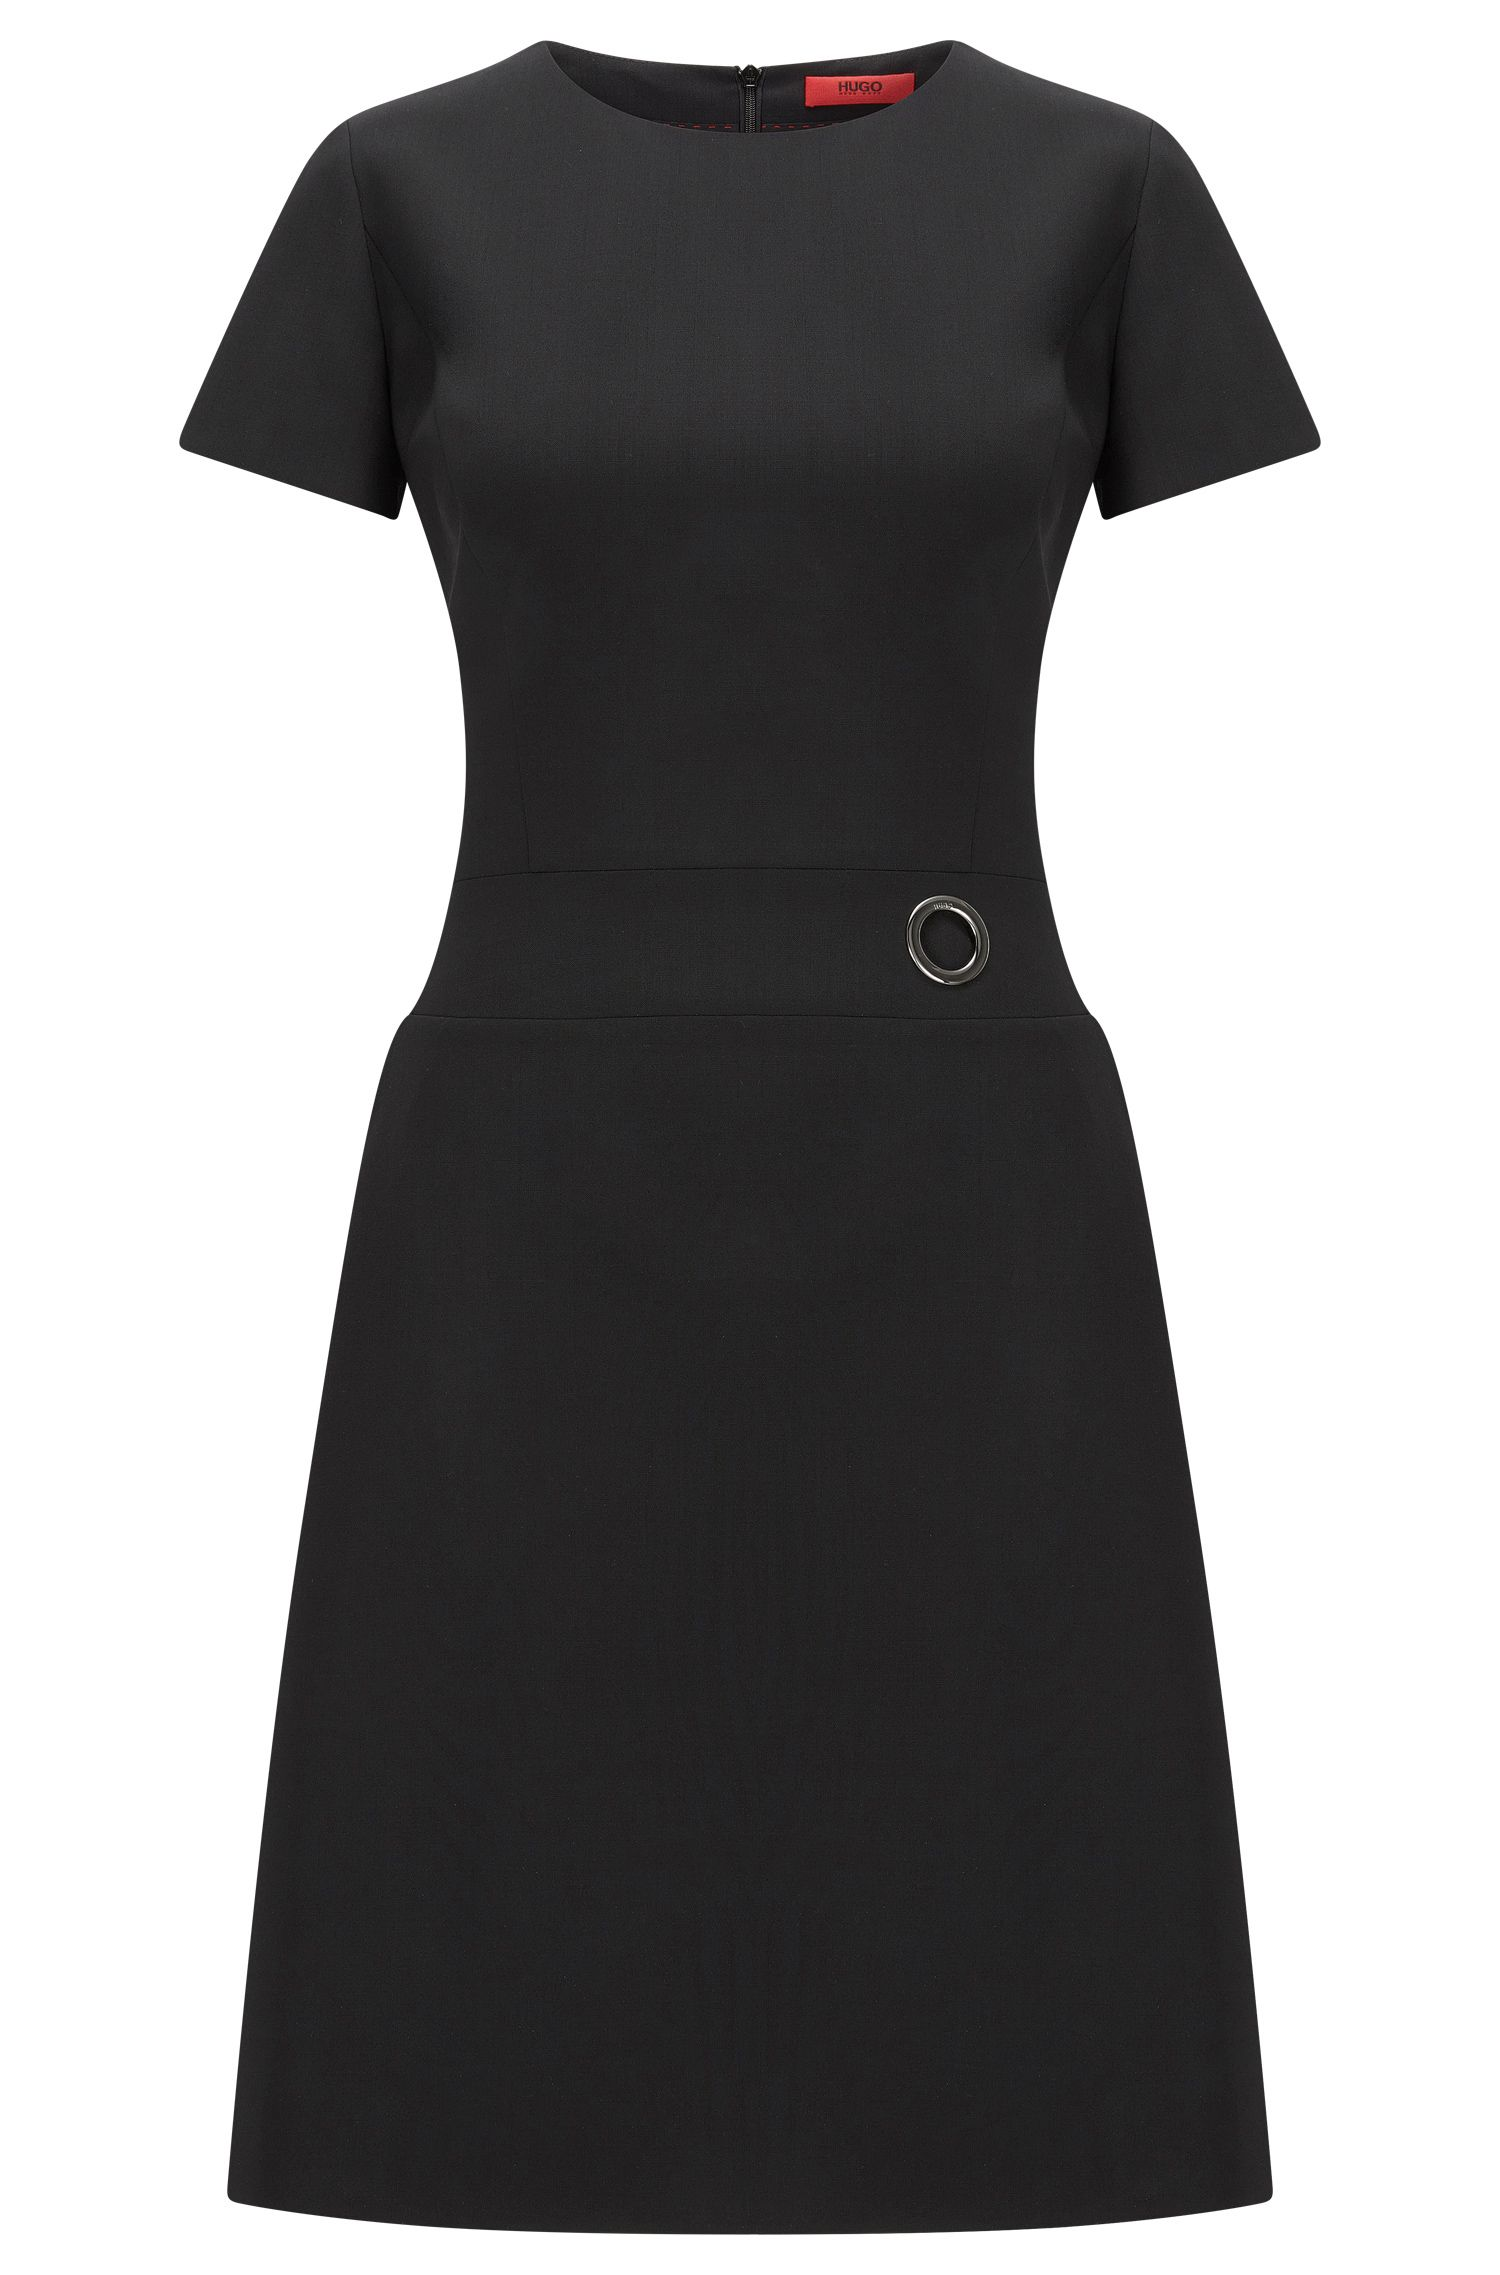 Short-sleeved dress in virgin wool blend